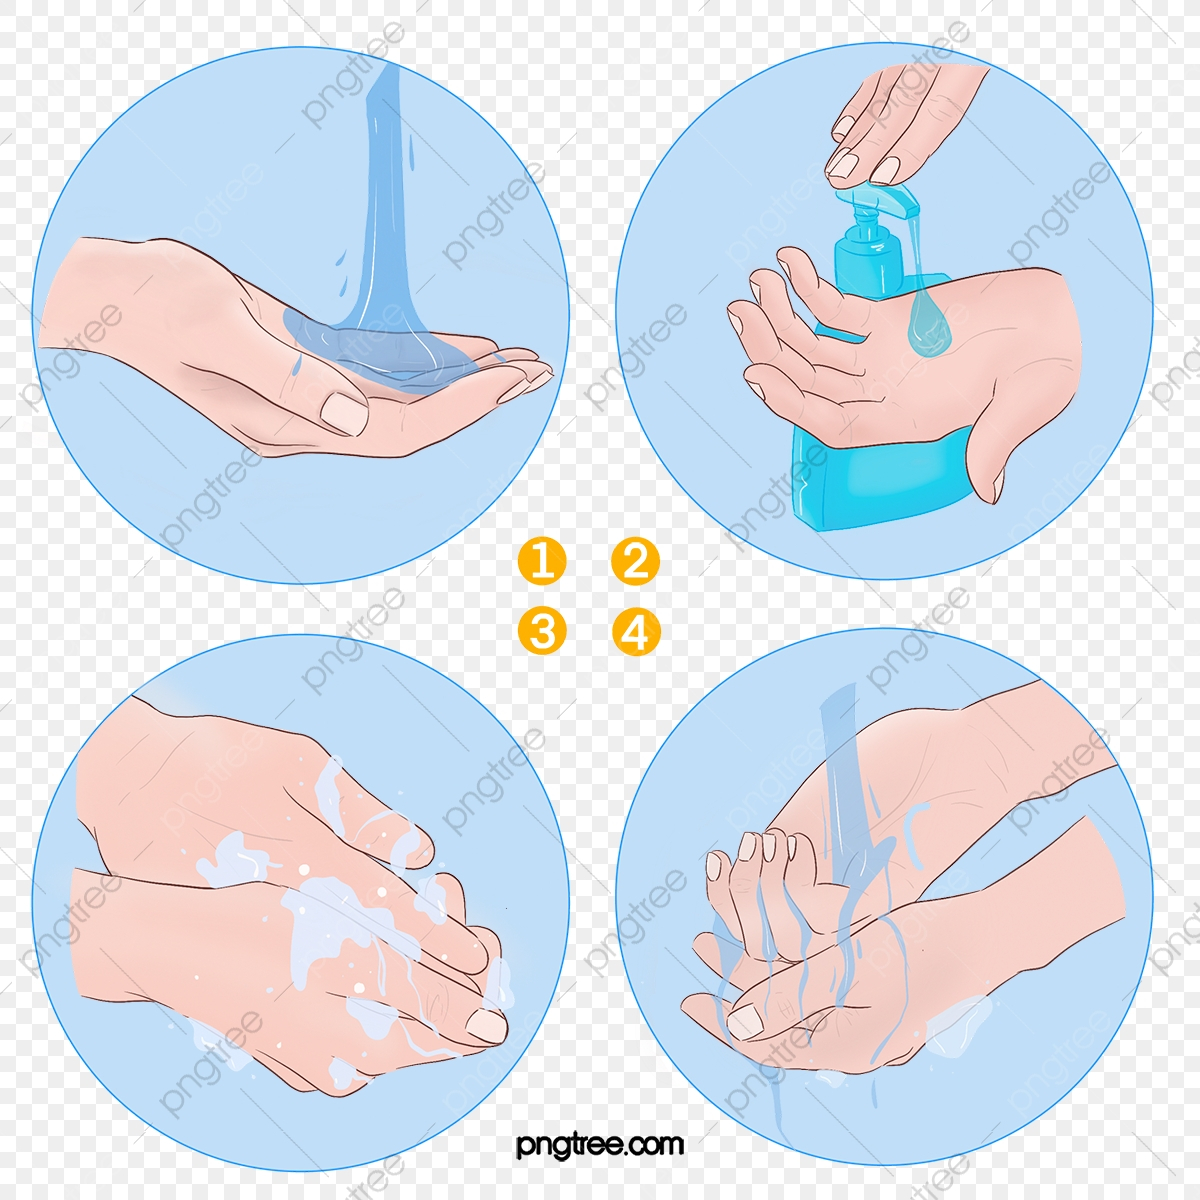 Wash Your Hands - Now More Important Than Ever! - Mendocino Coast Clinics